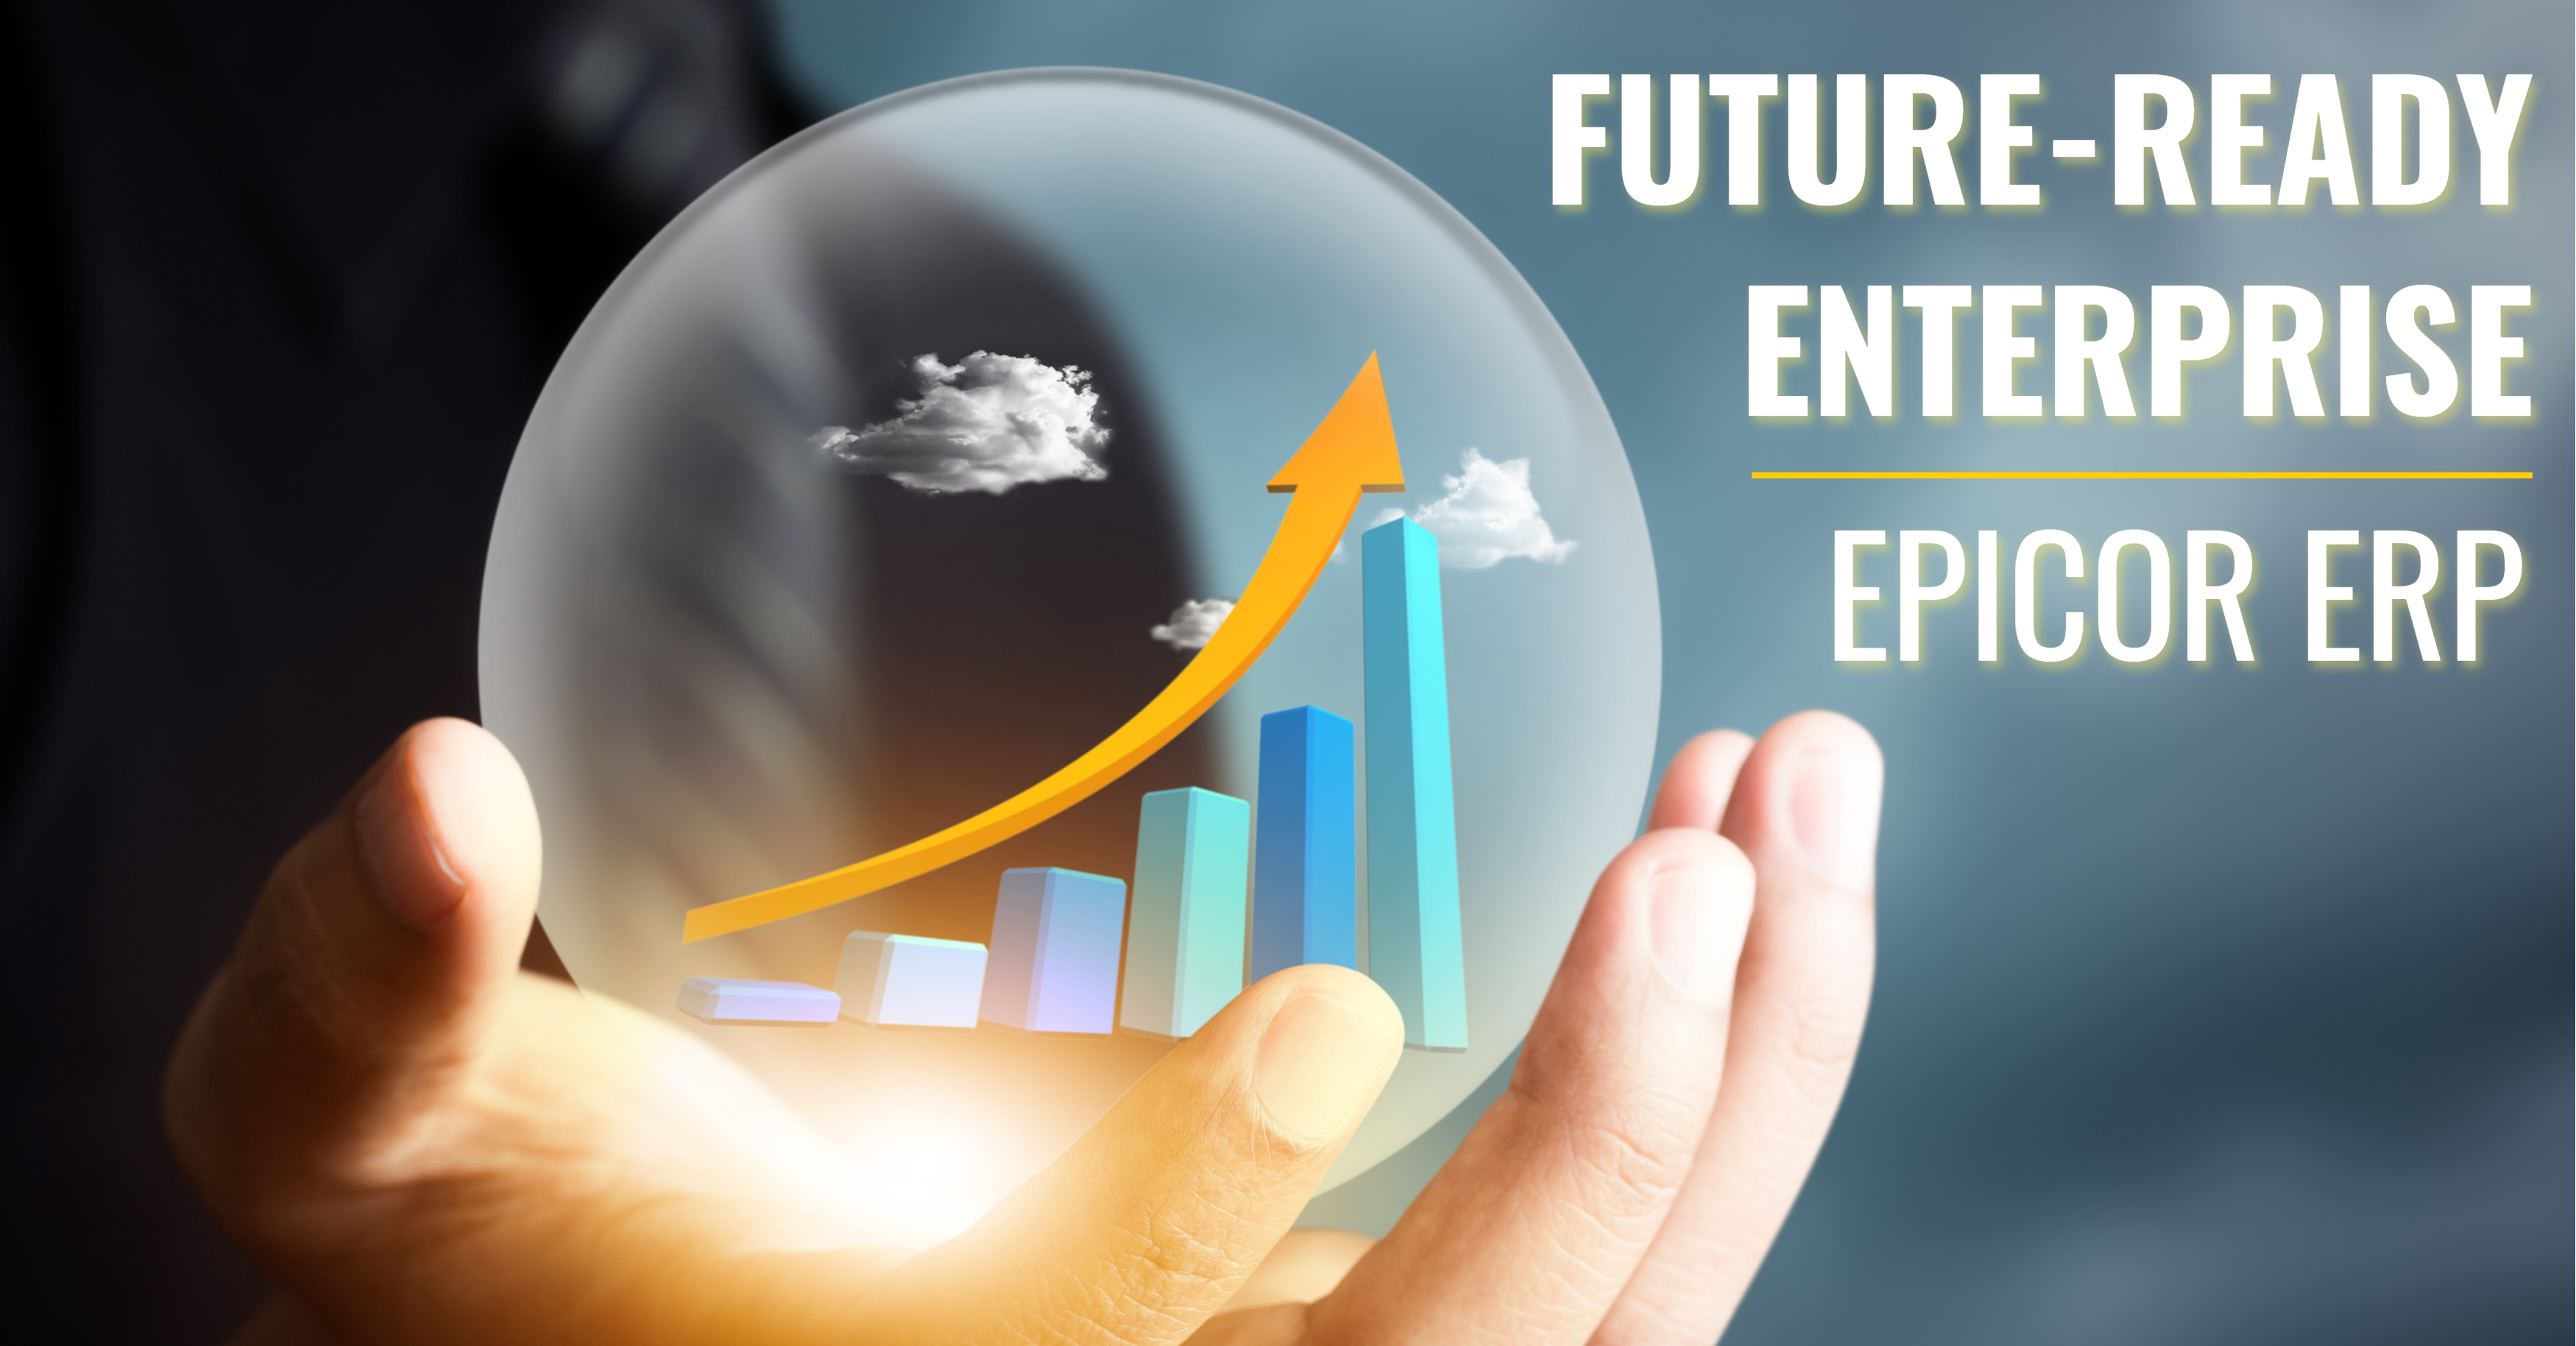 Become a Future-Ready Enterprise with Epicor ERP